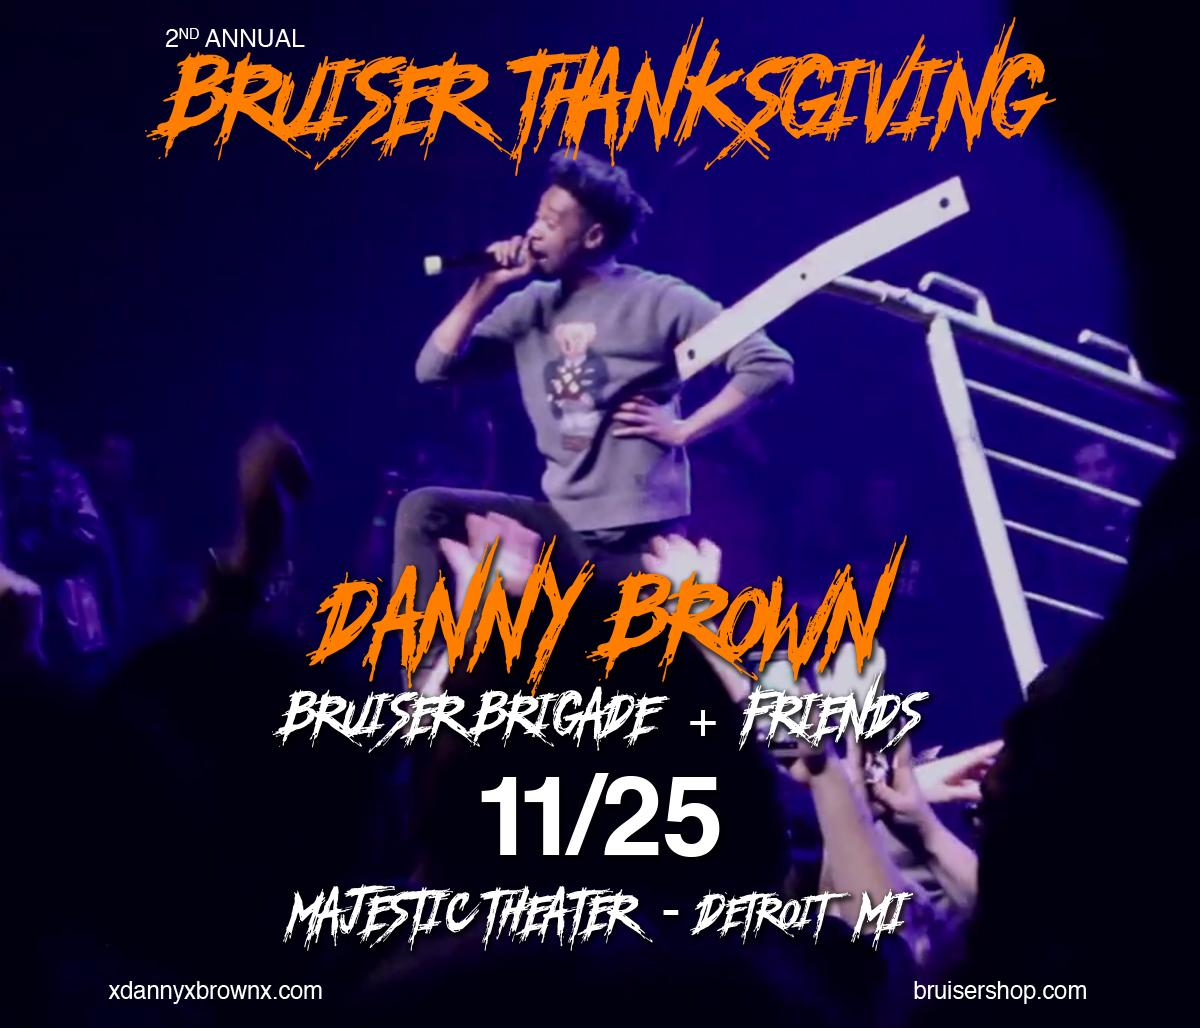 Tickets for Bruiser Thanksgiving 2 are now on sale!  https://t.co/s7JbKJG0rc  @xdannyxbrownx @bruiserbrigade https://t.co/8rc8cNH83D